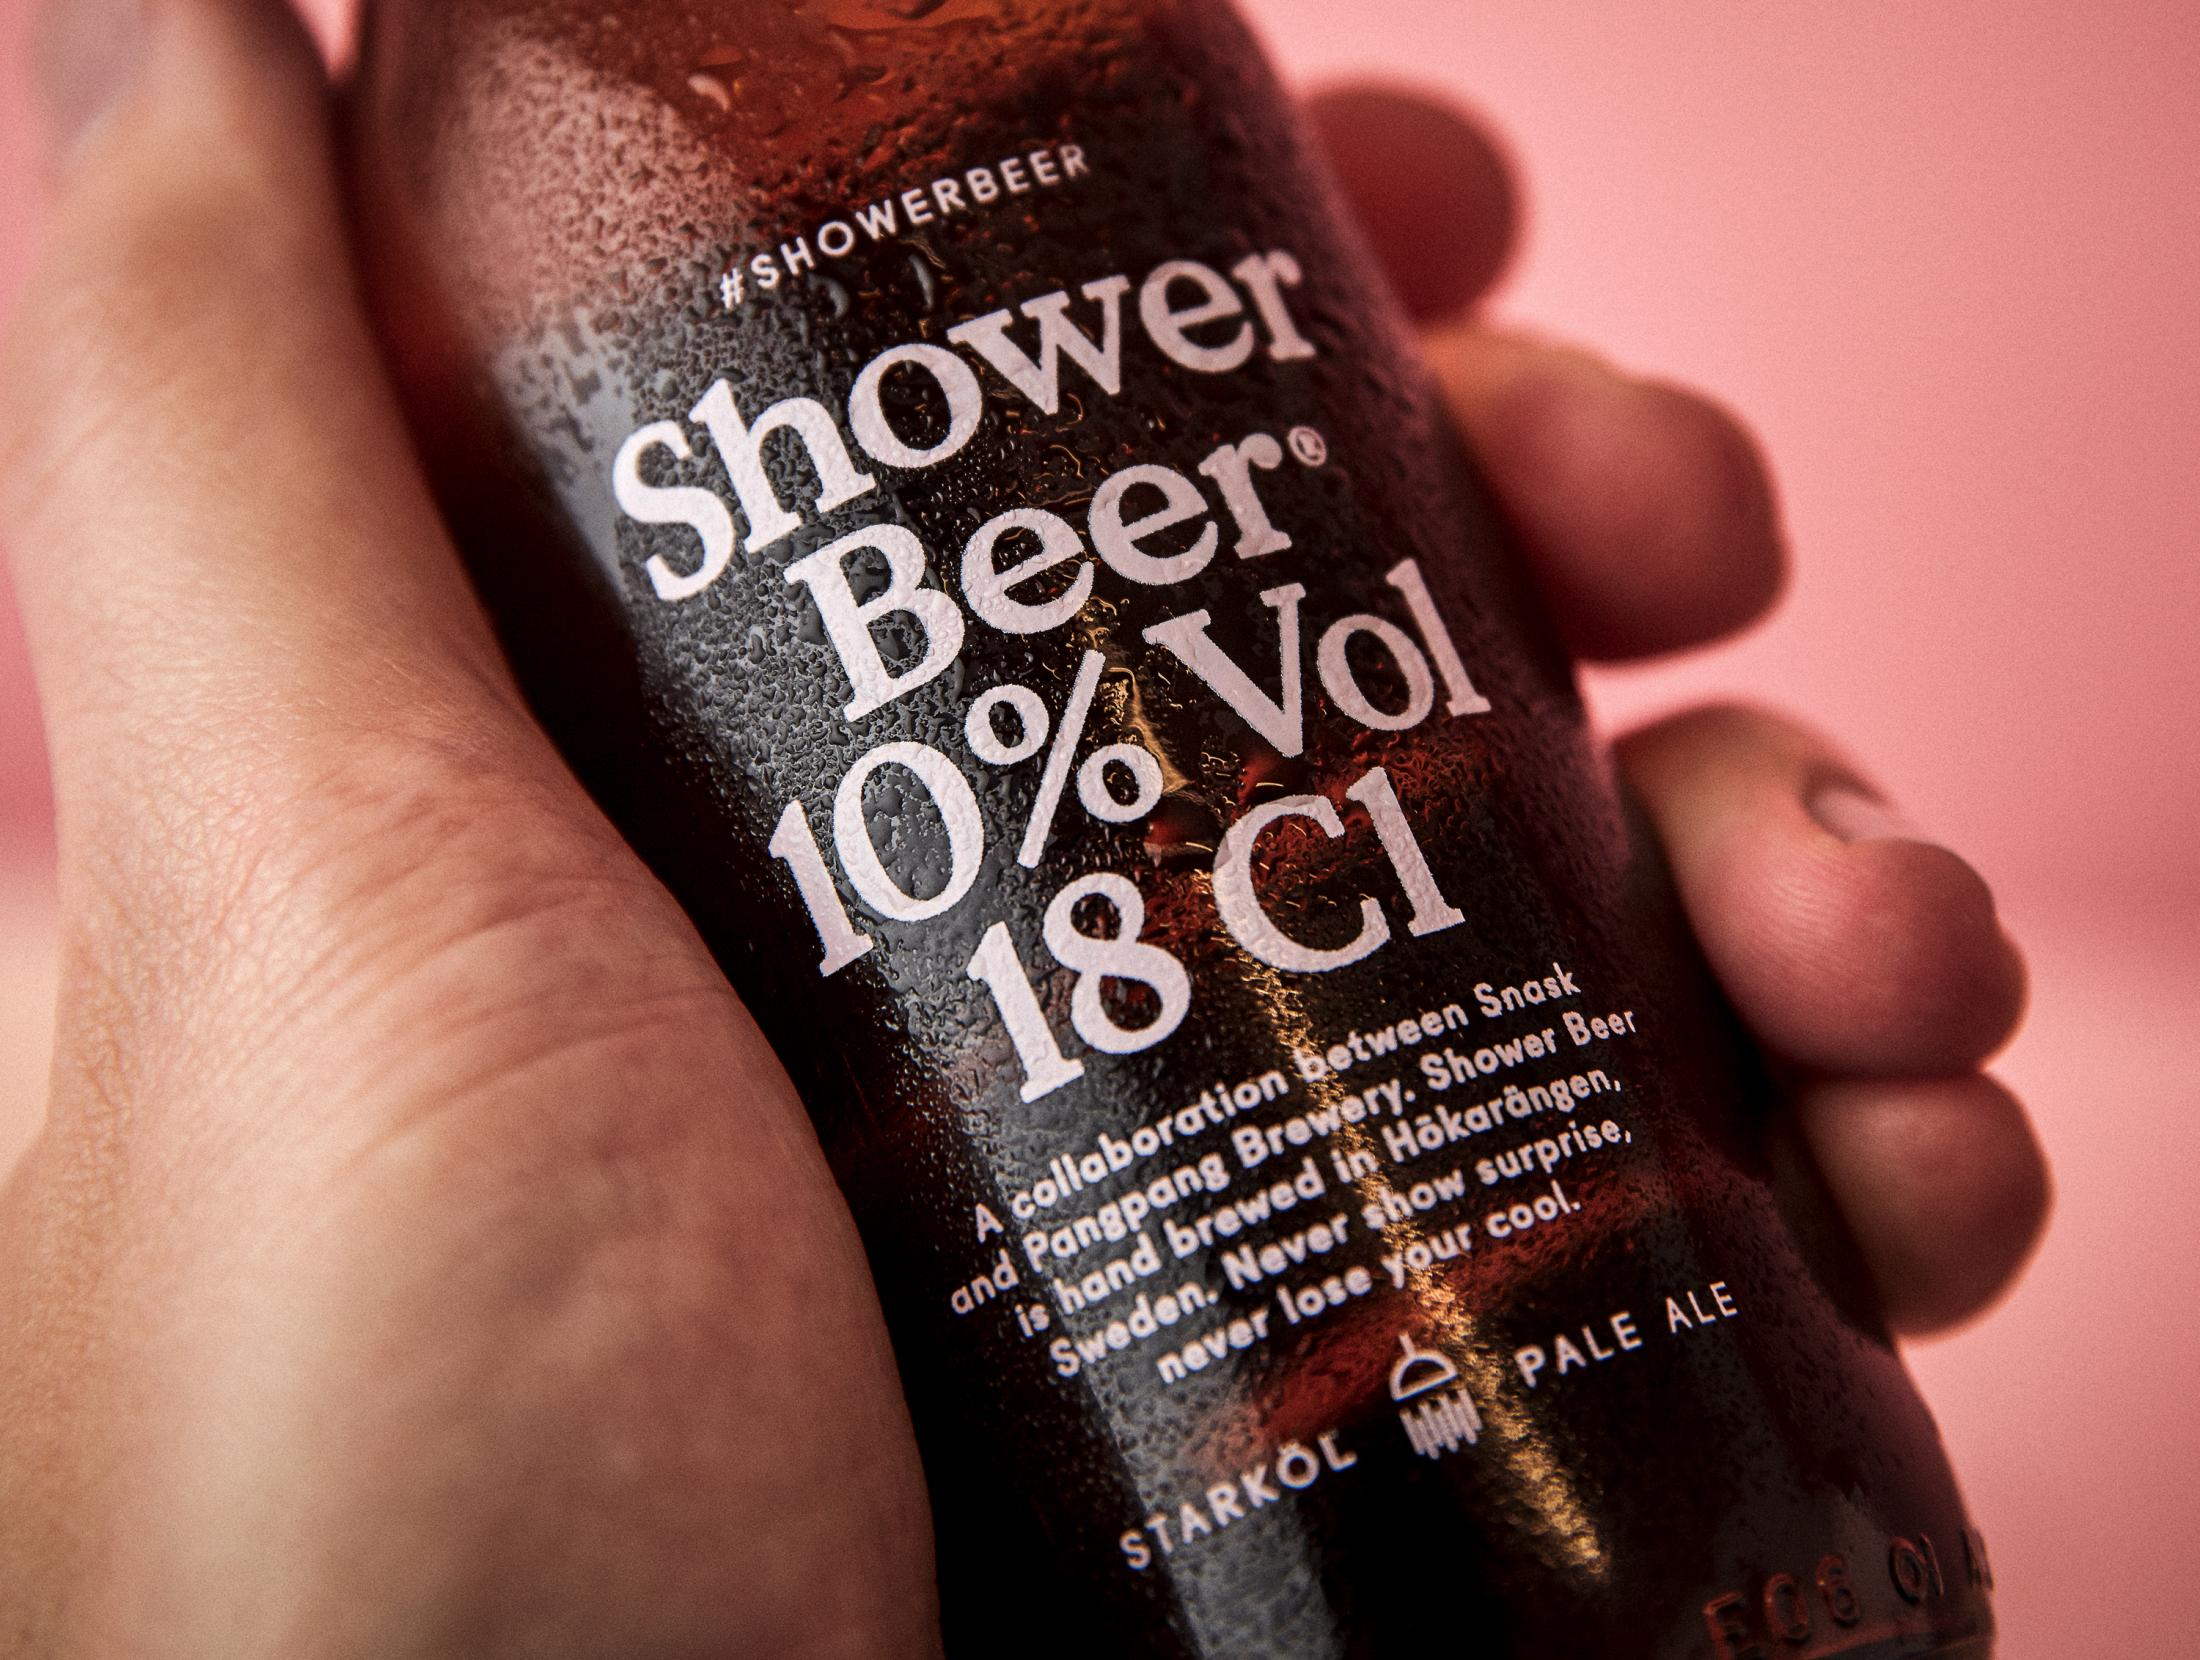 aotwshower-beer_07_hand-holding-bottle_close-up.jpg